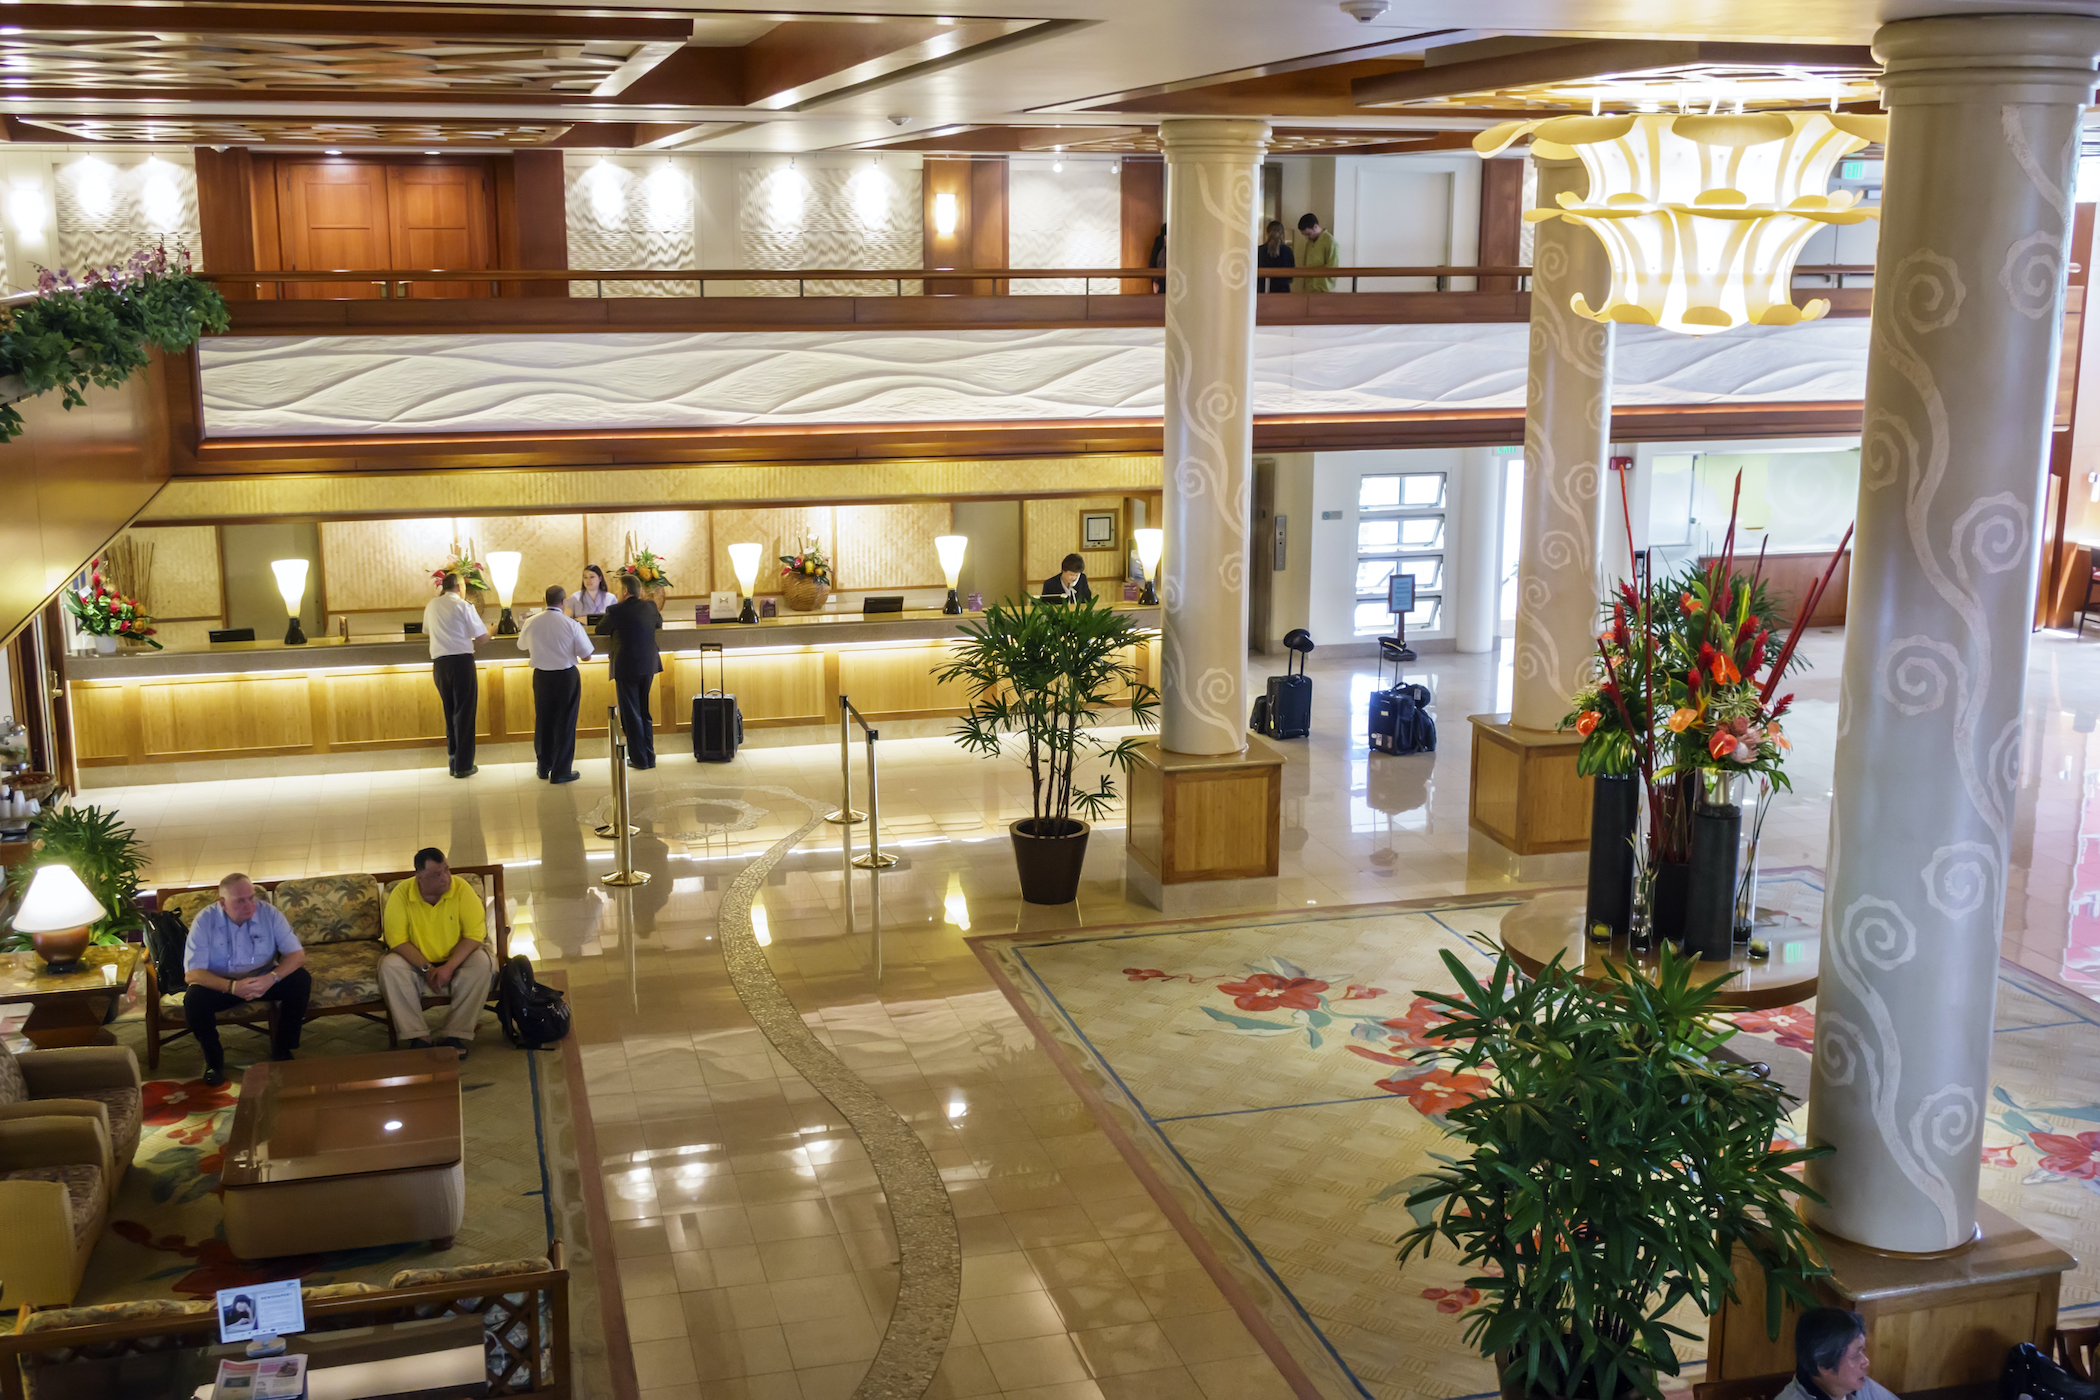 Fewer hotels have sold during the coronavirus pandemic, hurt by reduced travel to stop the spread of the virus. (Getty Images)